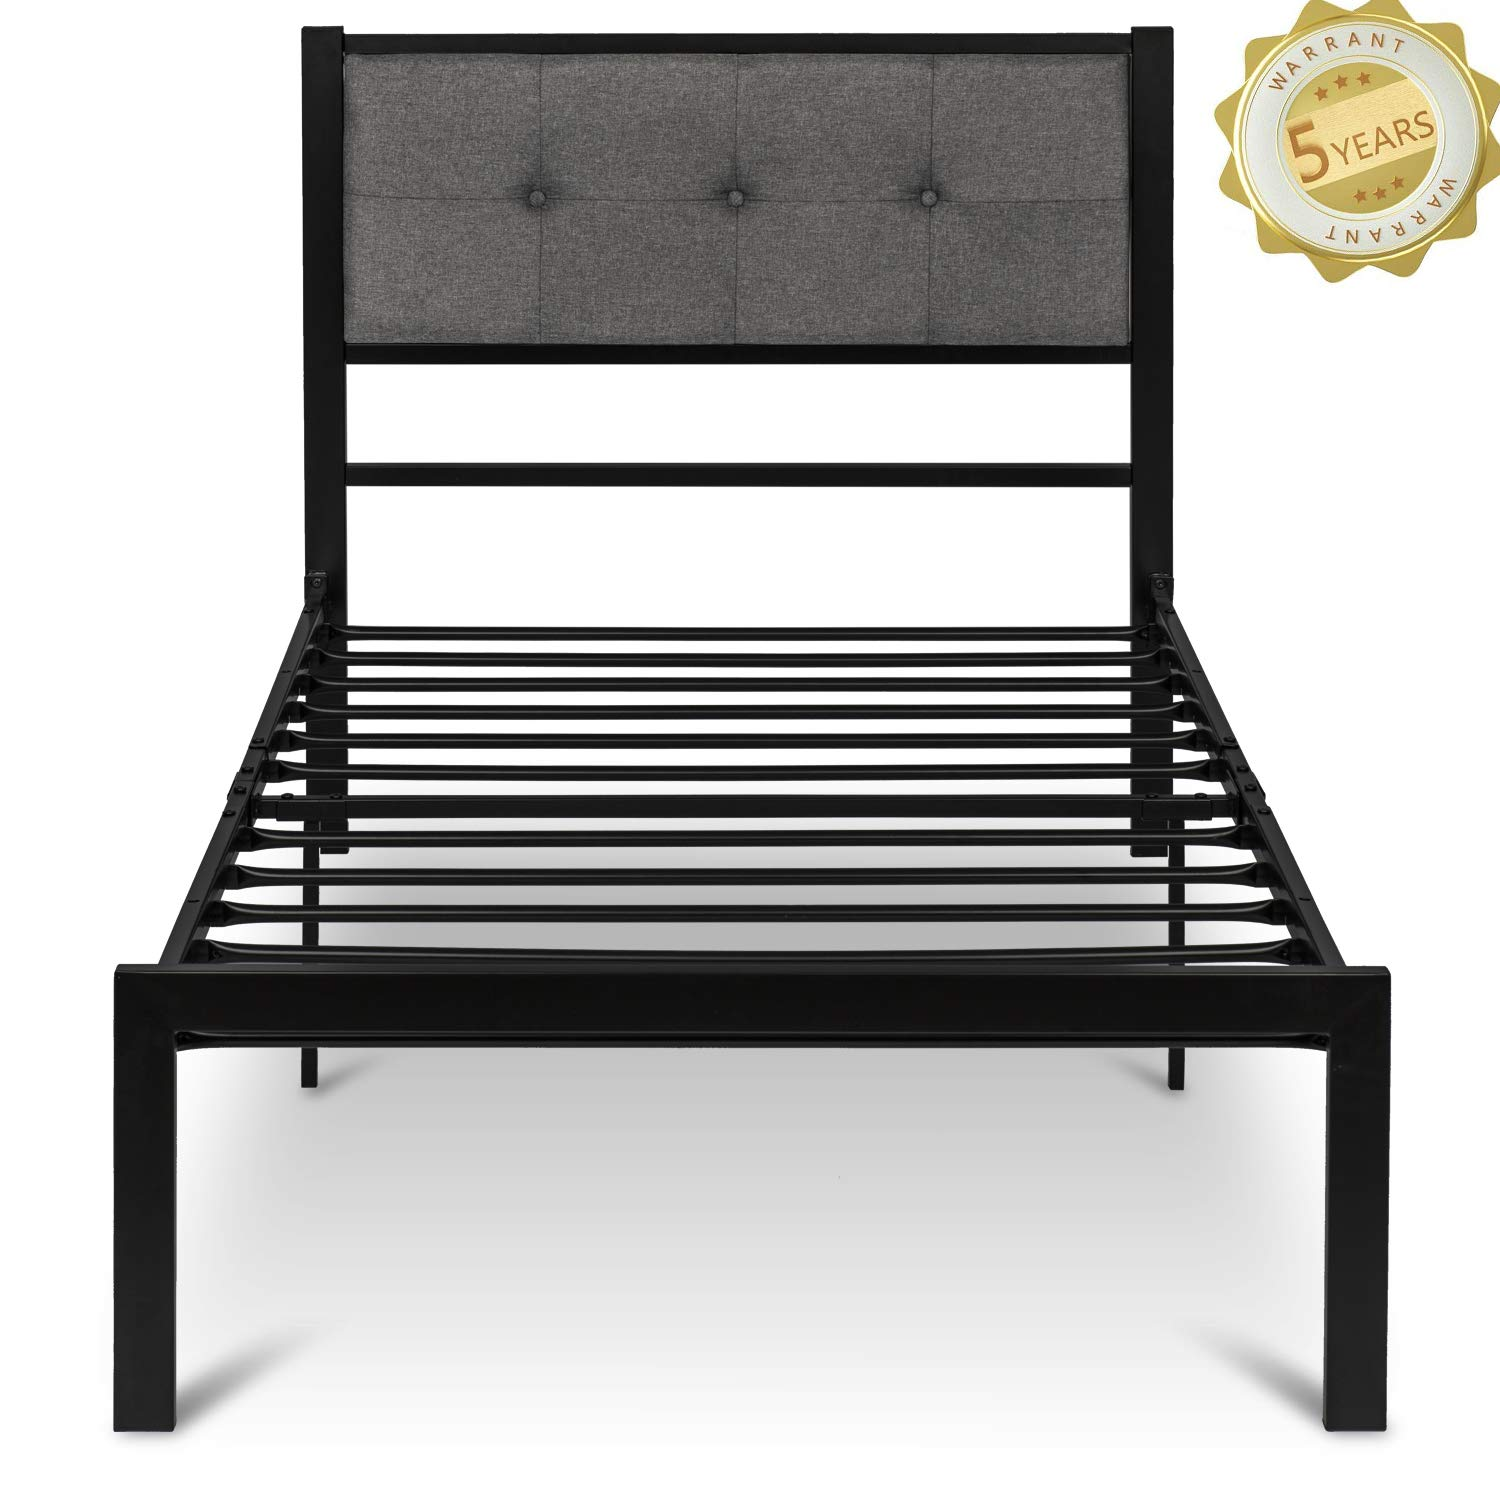 Romatlink Twin Platform Bed Wood Frame with Storage Headboard Wooden Slat Support for Home Hostel Dorms etc.No Box Spring Needed with Clear Instruction- Espresso